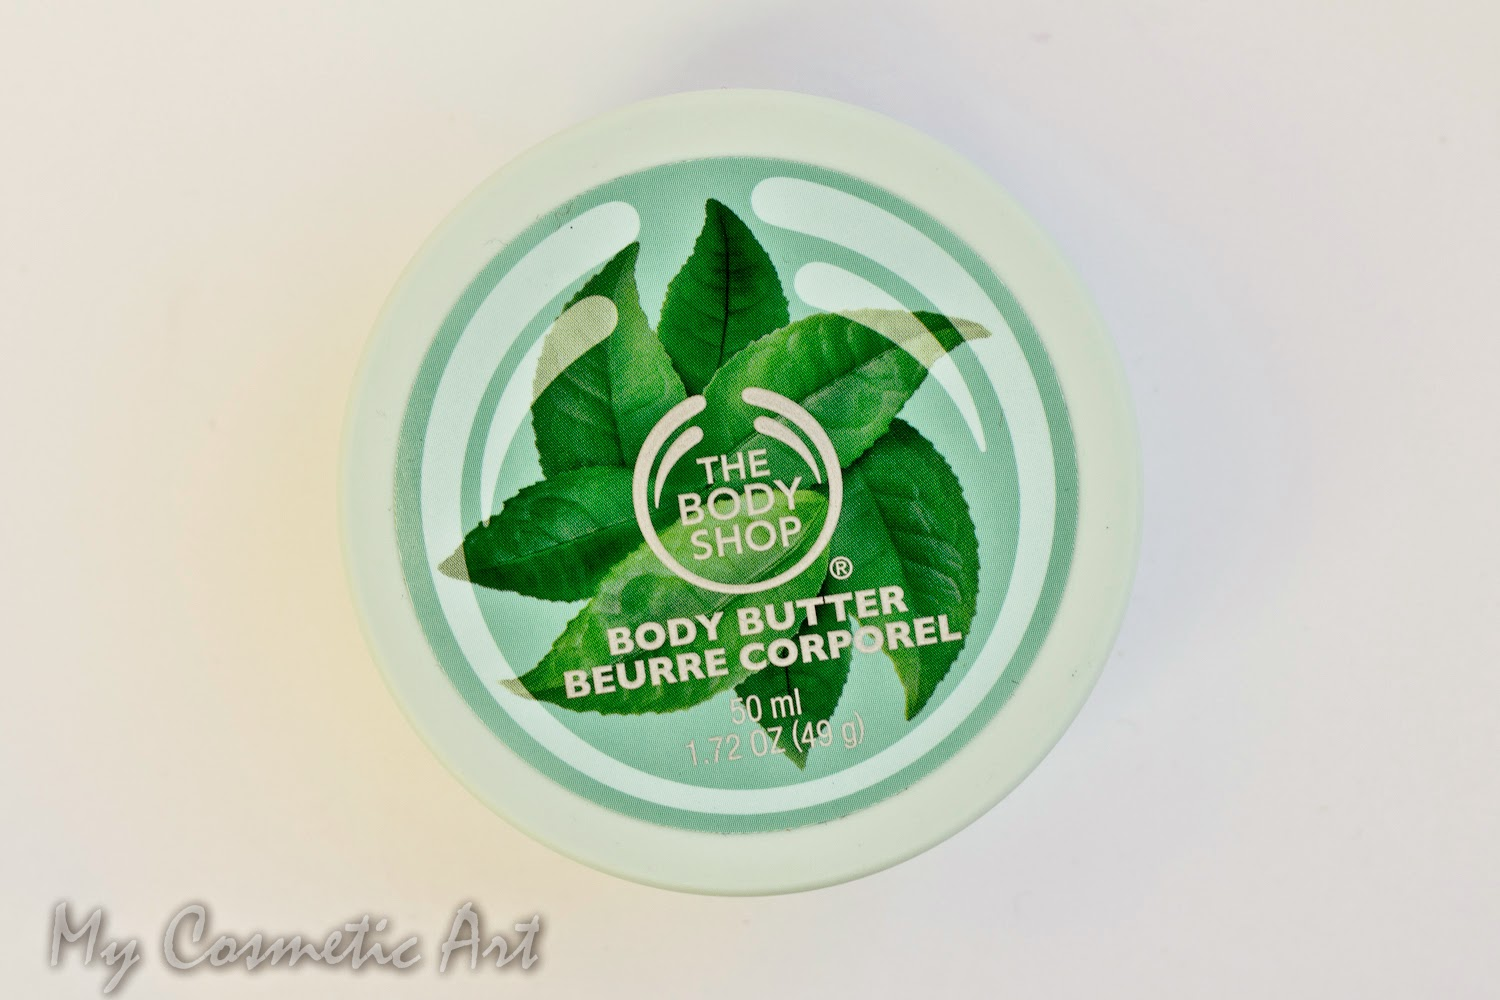 Manteca corporal Fuji Green Tea The Body Shop